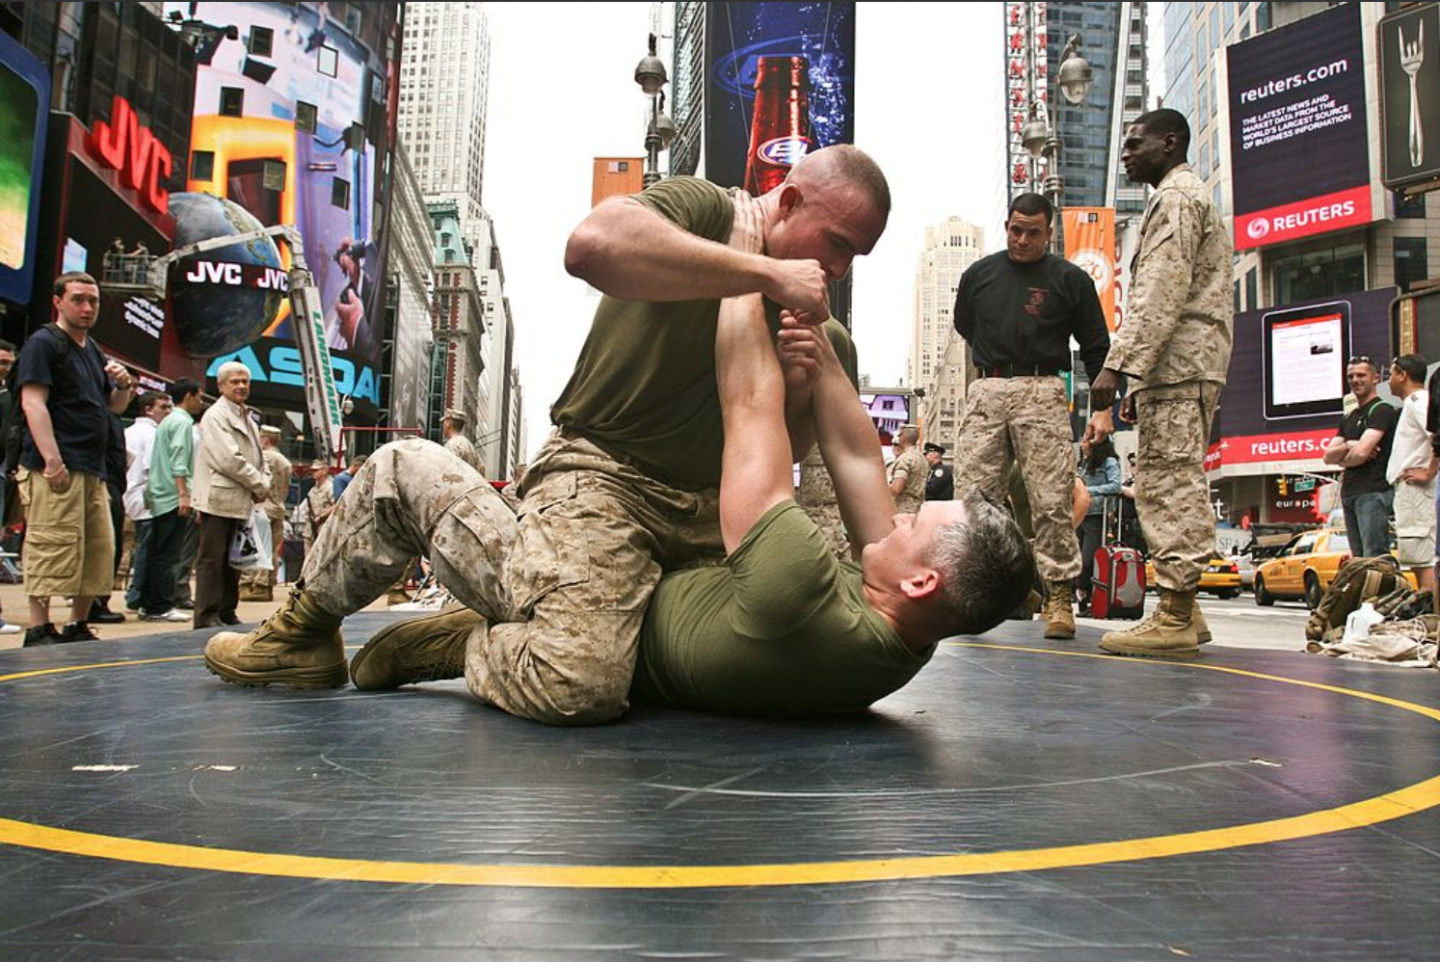 US Marines demonstrate their martial arts moves in Times Square, NY